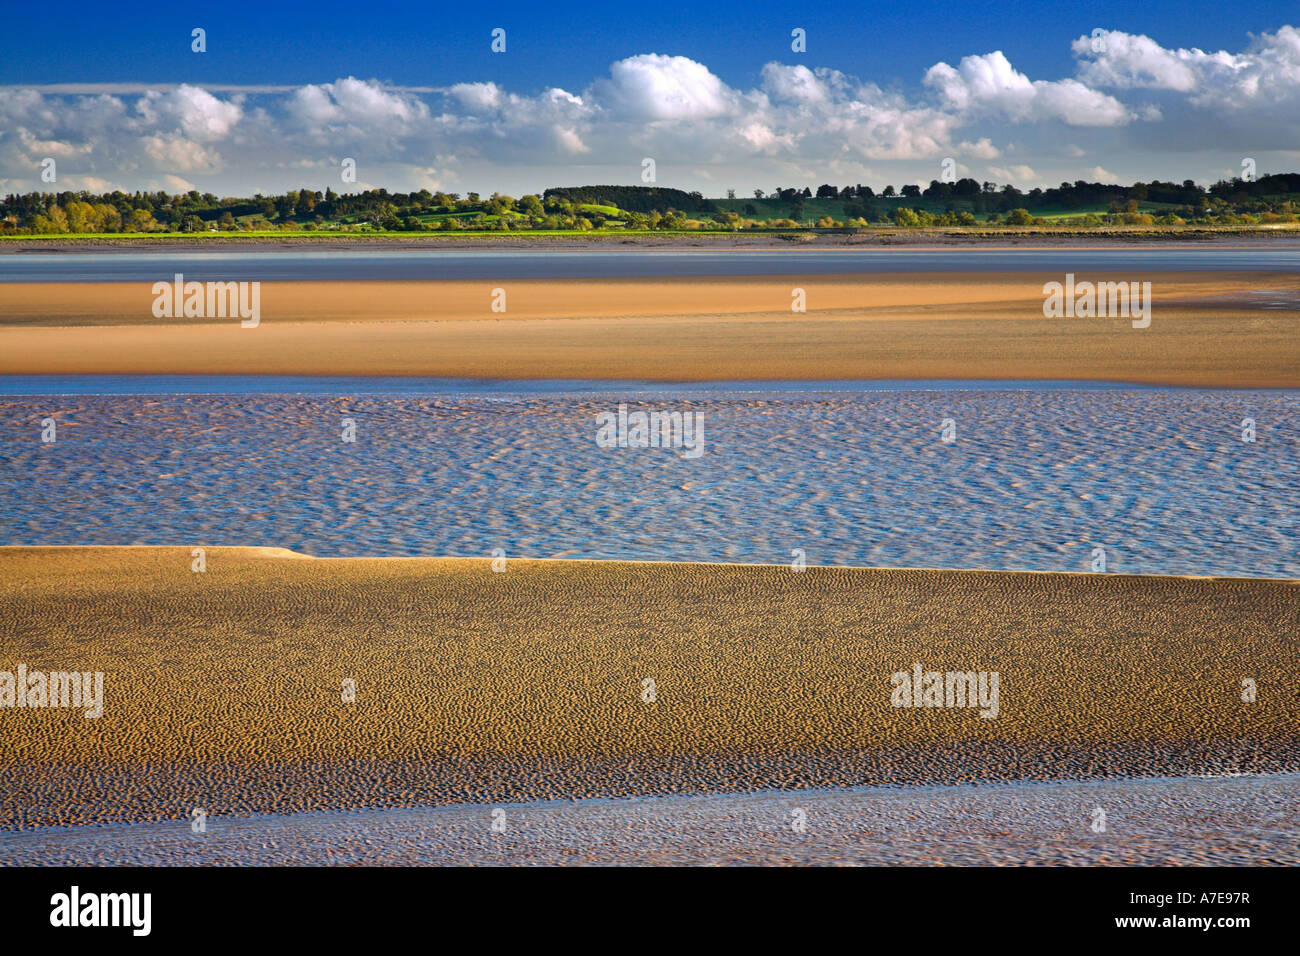 Horizontal format picture of the Lower River Severn Gloucestershire England - Stock Image